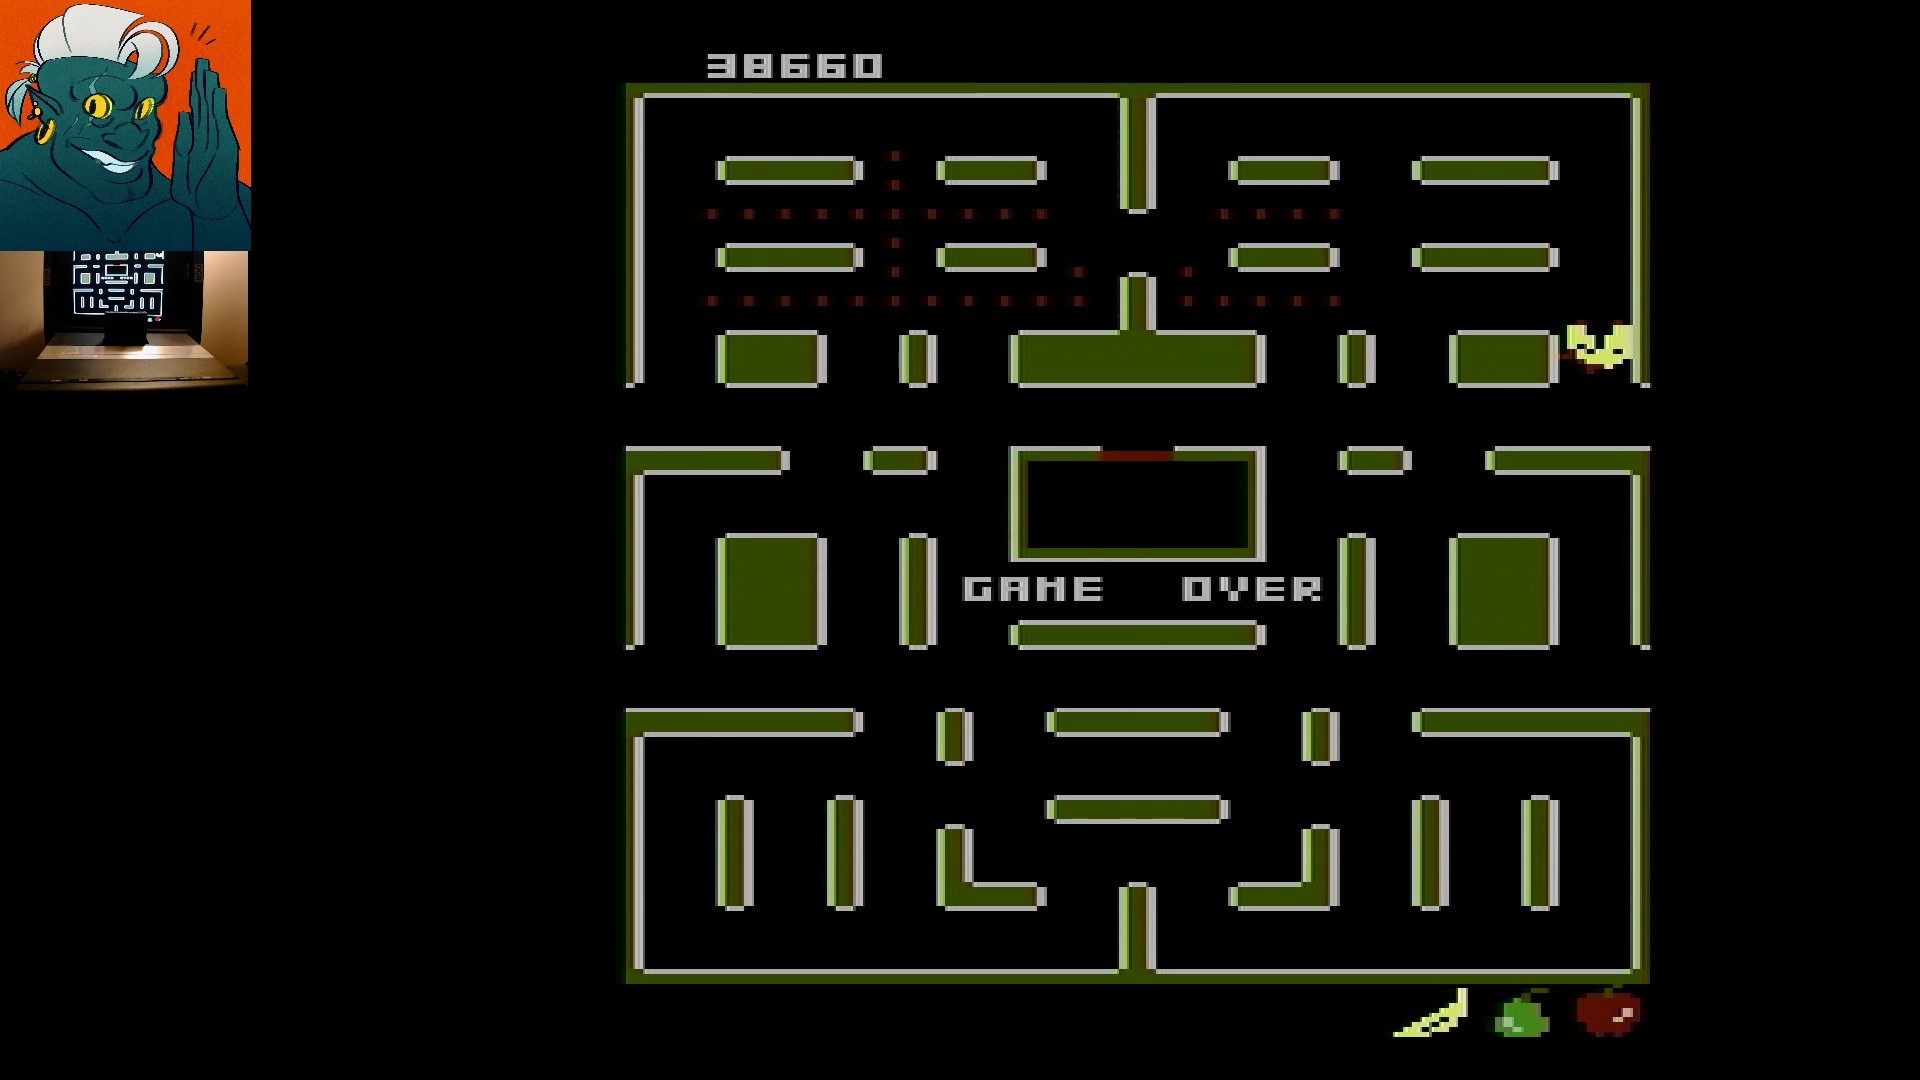 AwesomeOgre: Pac-Man Collection: Ms. Pac-Attack [Apple/Plus Off/Fast Off] (Atari 7800) 38,660 points on 2019-12-04 05:02:55